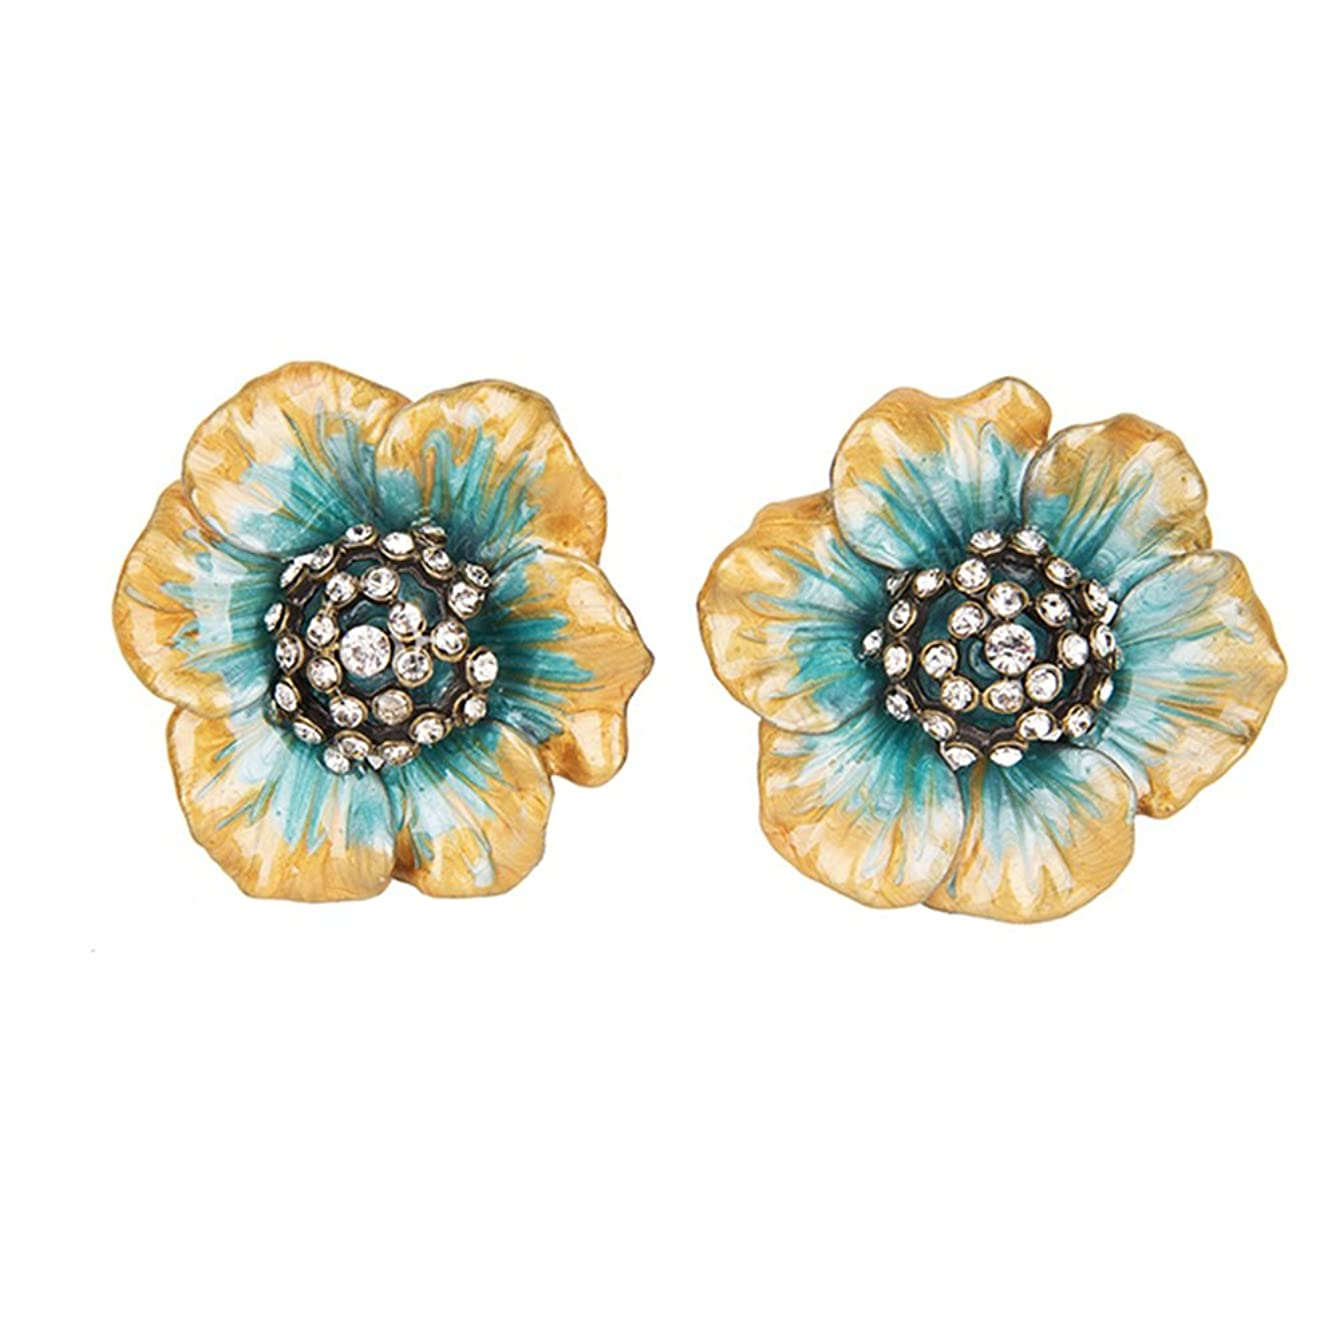 NIKKY HOME Decorative Flower Shape Metal Knobs Pull Handle for Door Cabinet Drawer Pack of 2